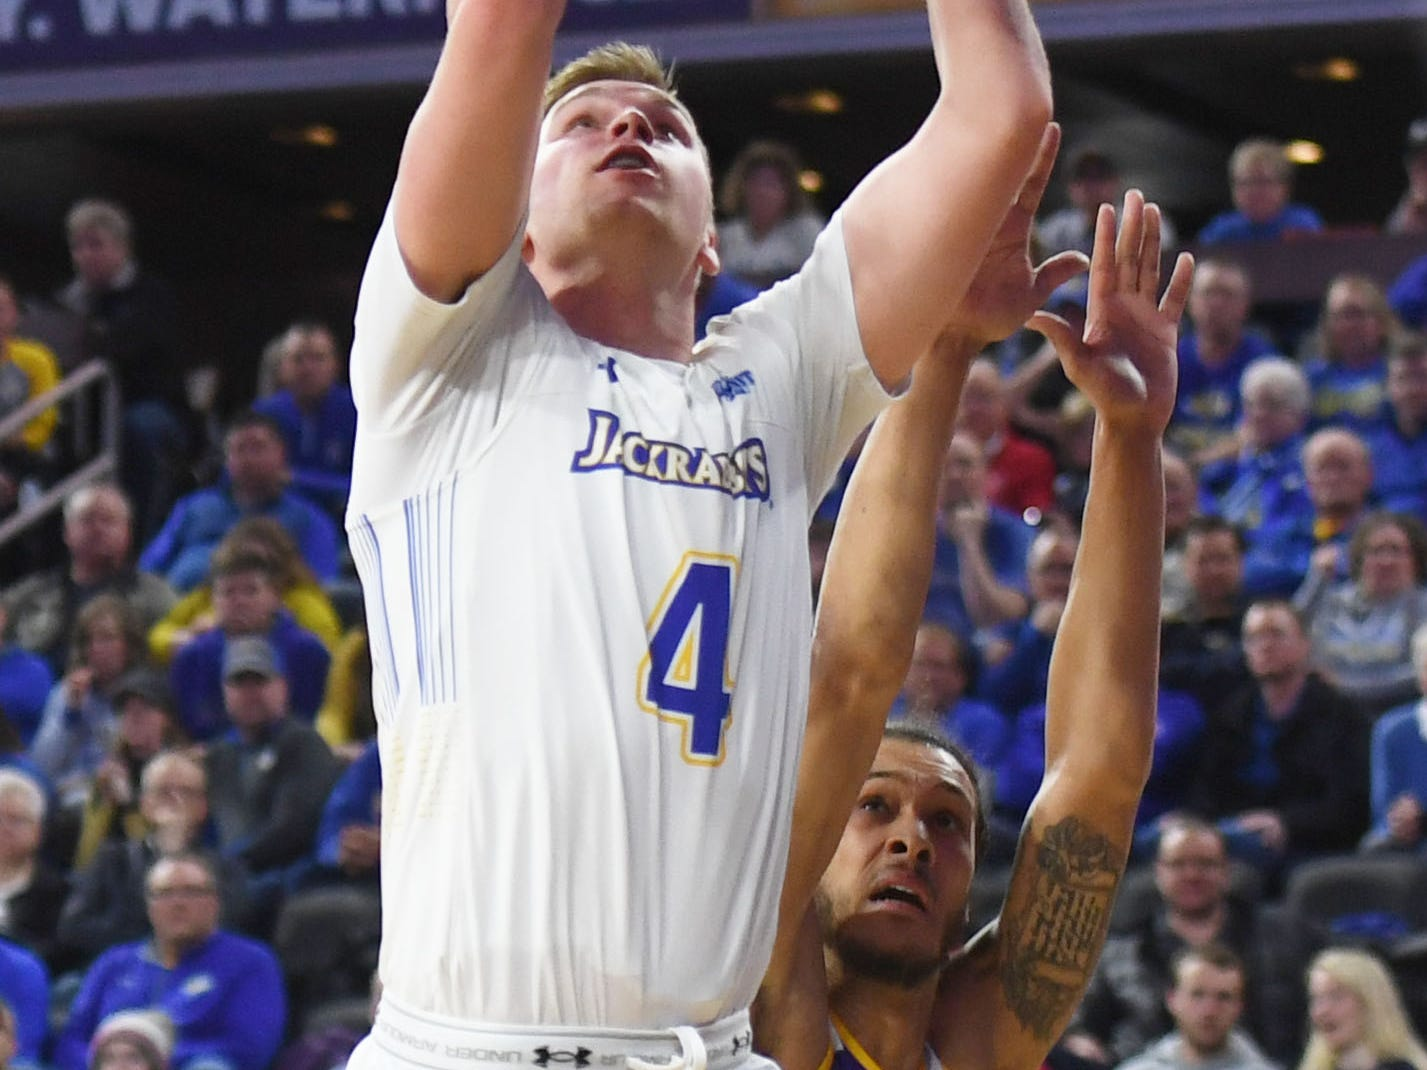 SDSU's Ryan Krueger attempts to score against Western Illinois during the game Saturday, March 9, in the Summit League tournament at the Denny Sanford Premier Center in Sioux Falls.